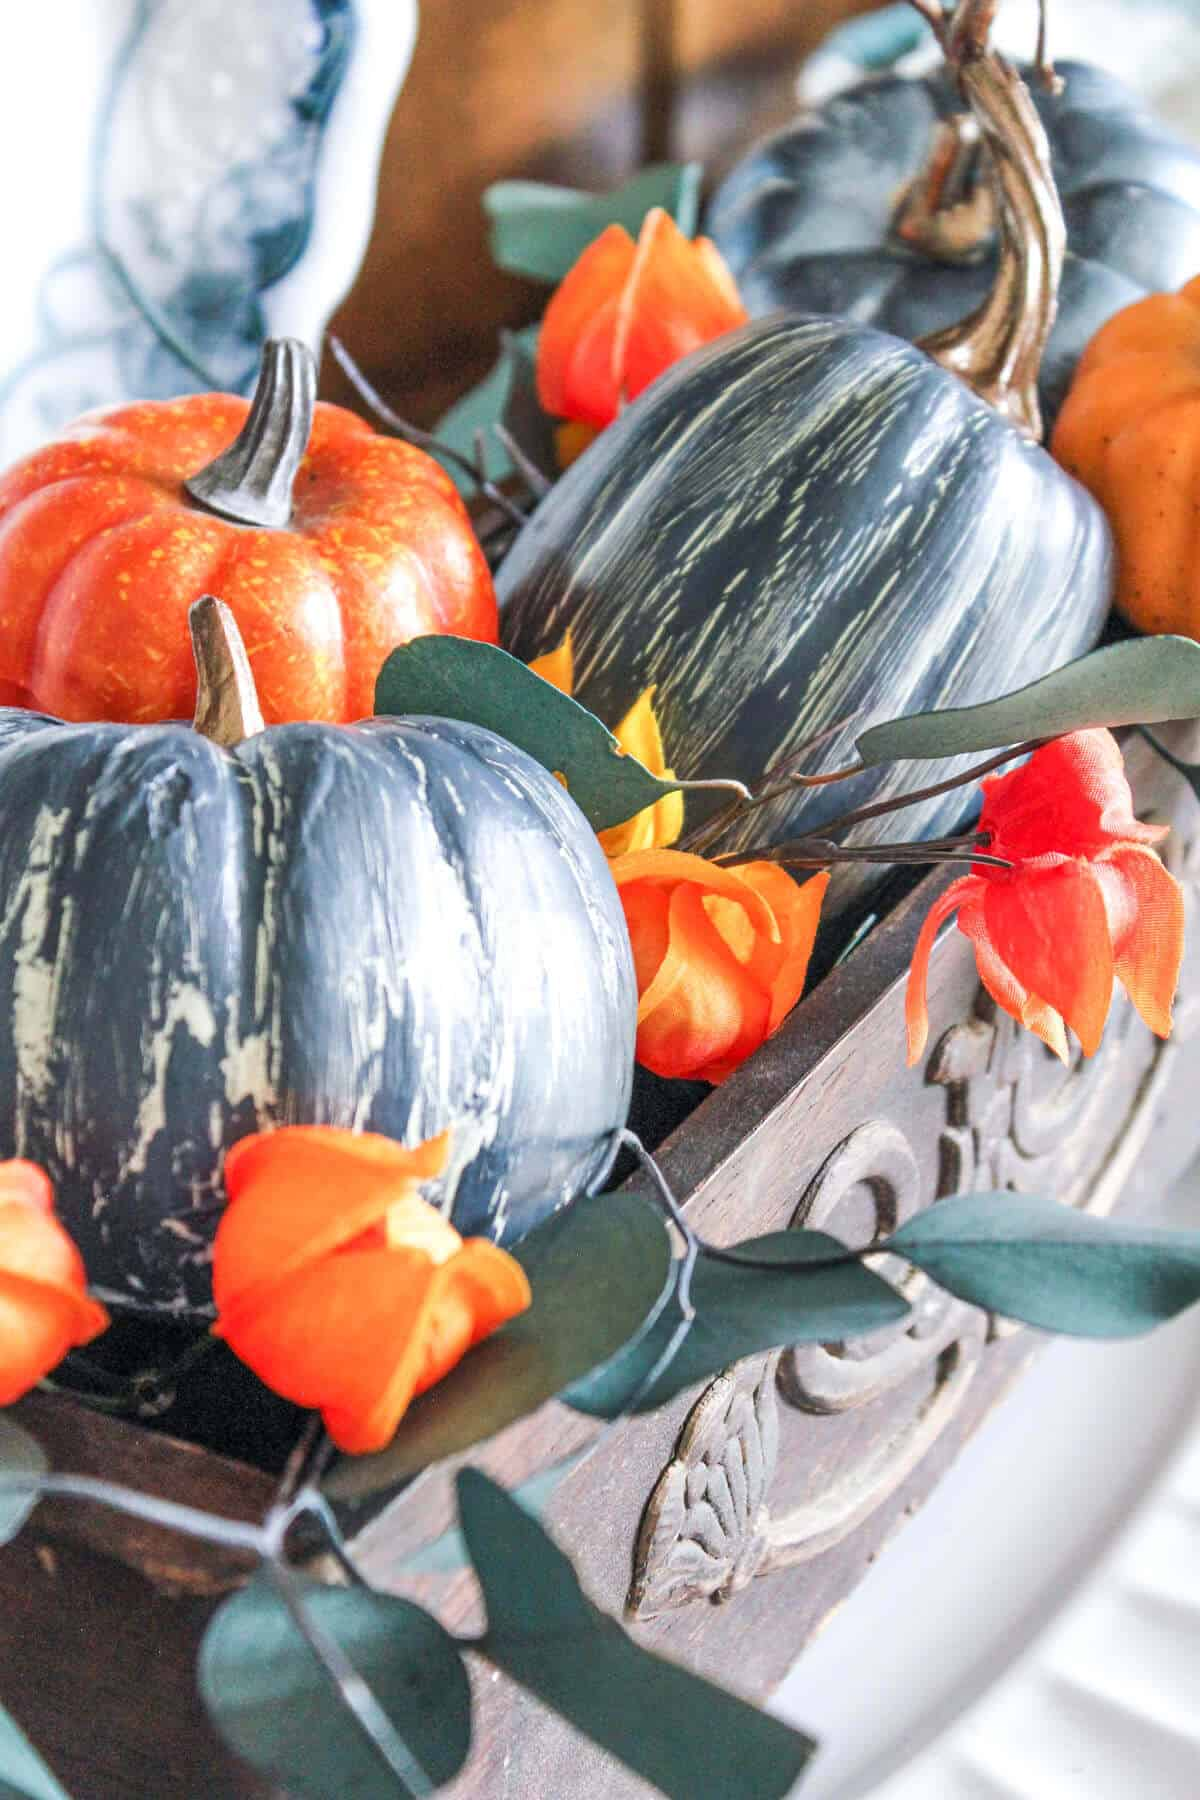 blue crackle painted pumpkins and orange pumpkins in a wooden carved box